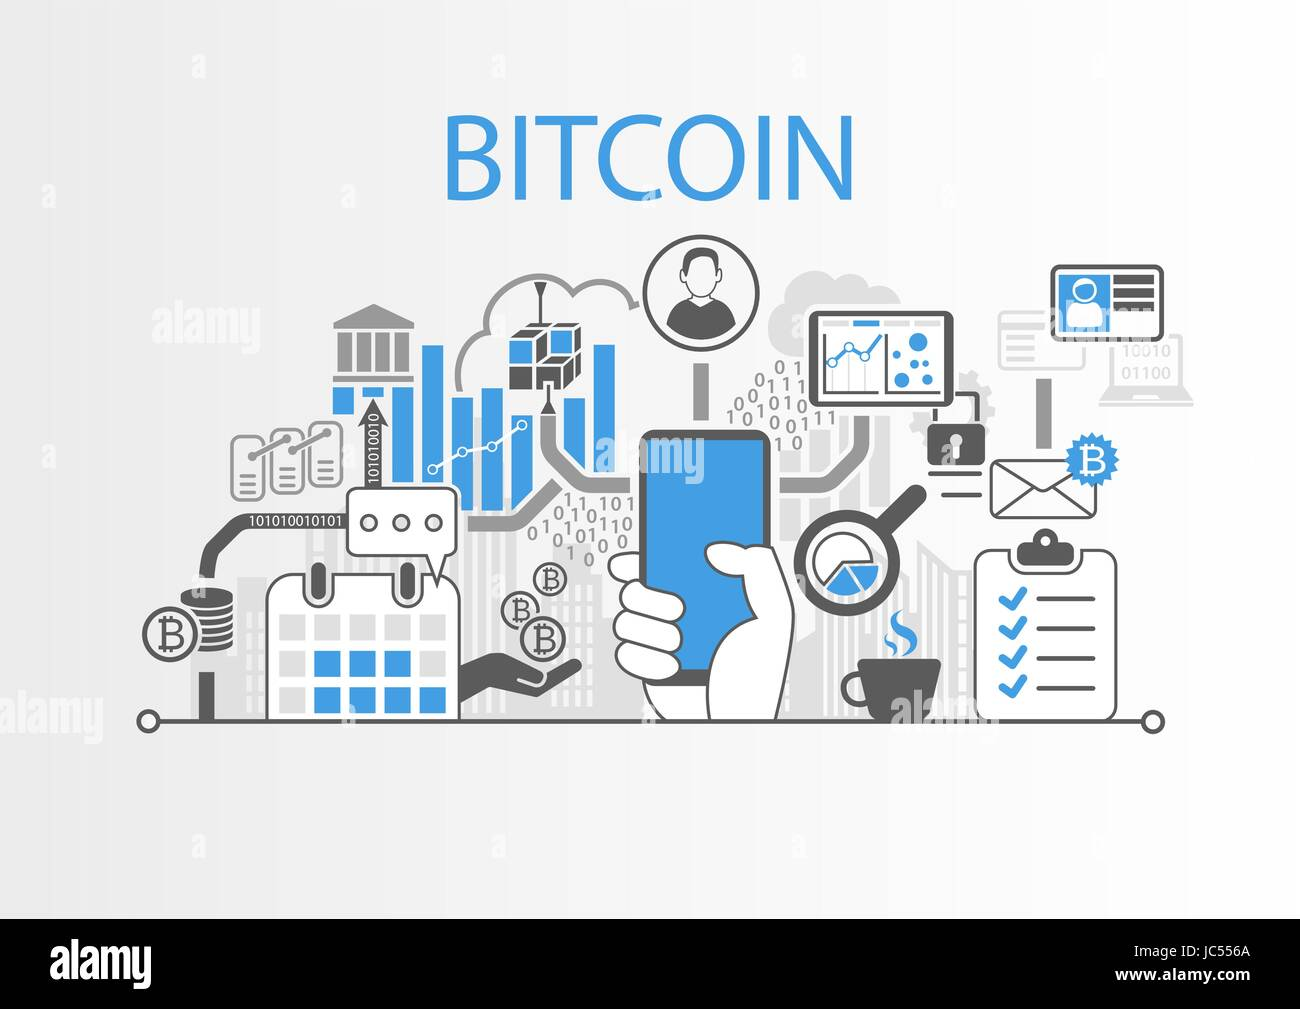 Bitcoin vector background illustration with hand holding smartphone and icons - Stock Image